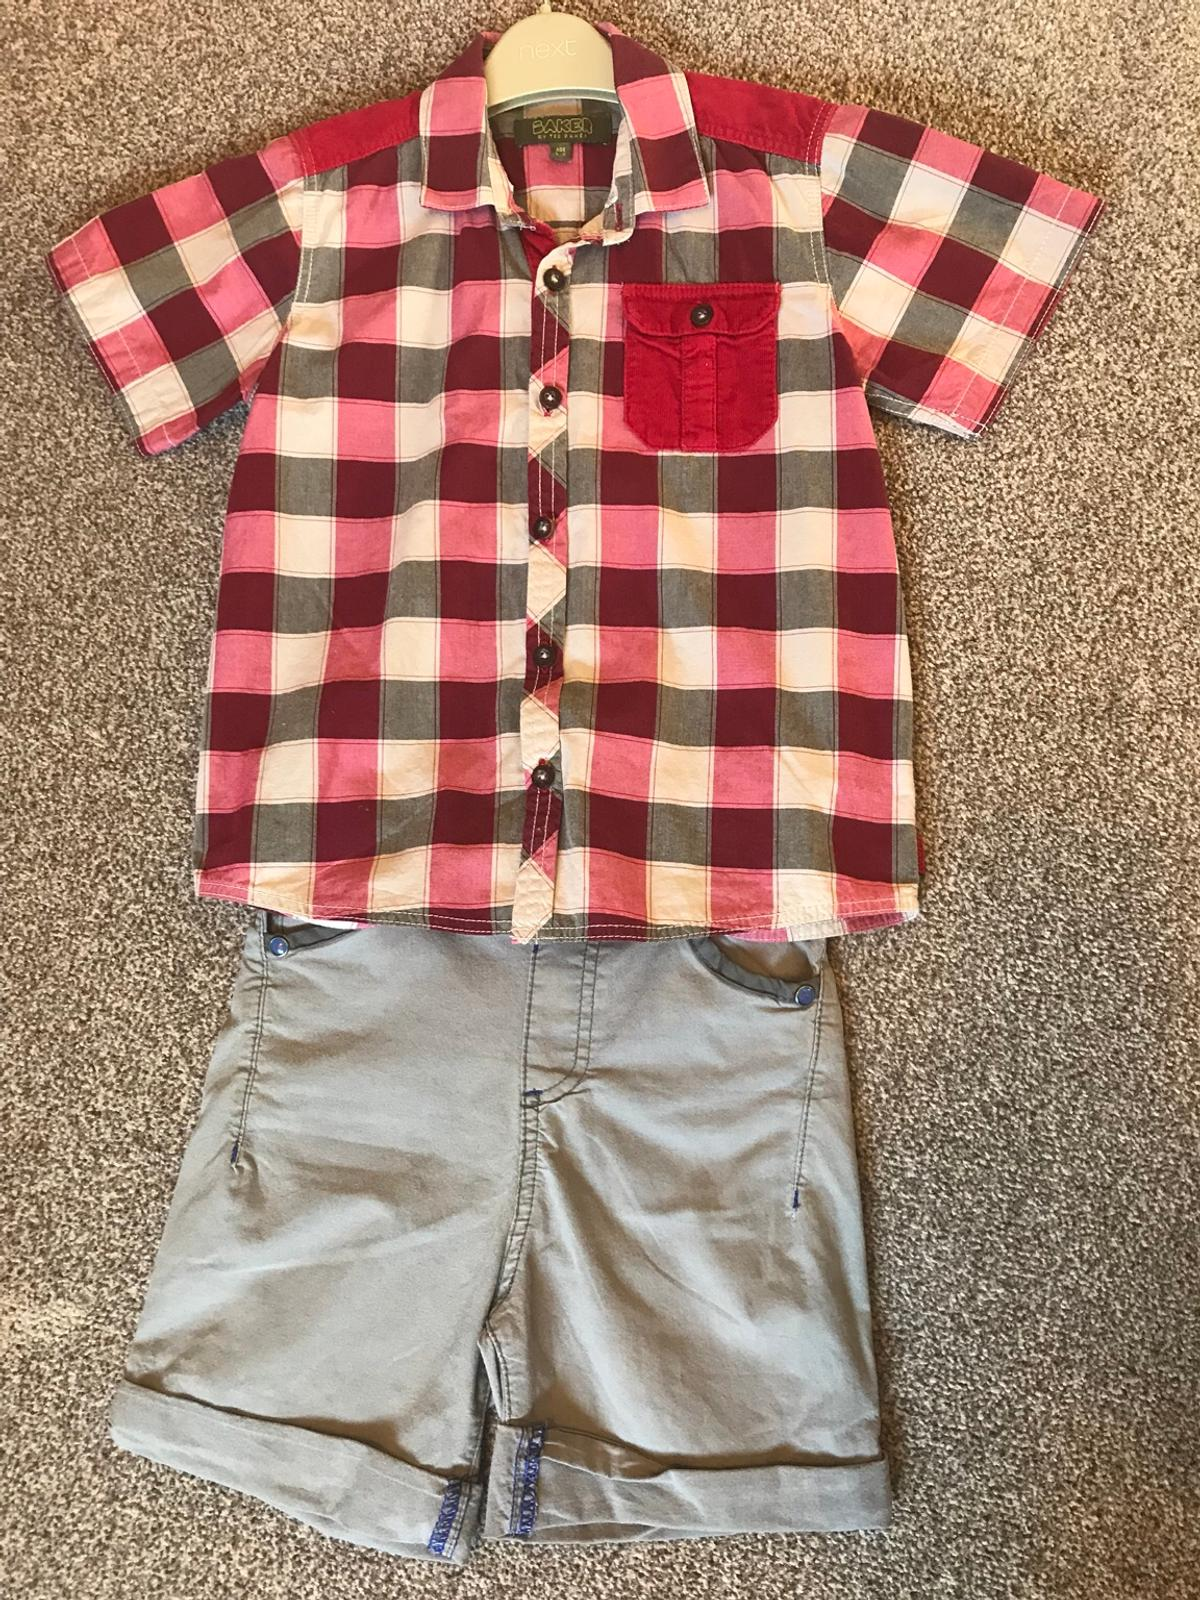 069a6e488dd4 Ted Baker shirt and shorts Age 5-6 years in S13 Sheffield for £8.00 ...